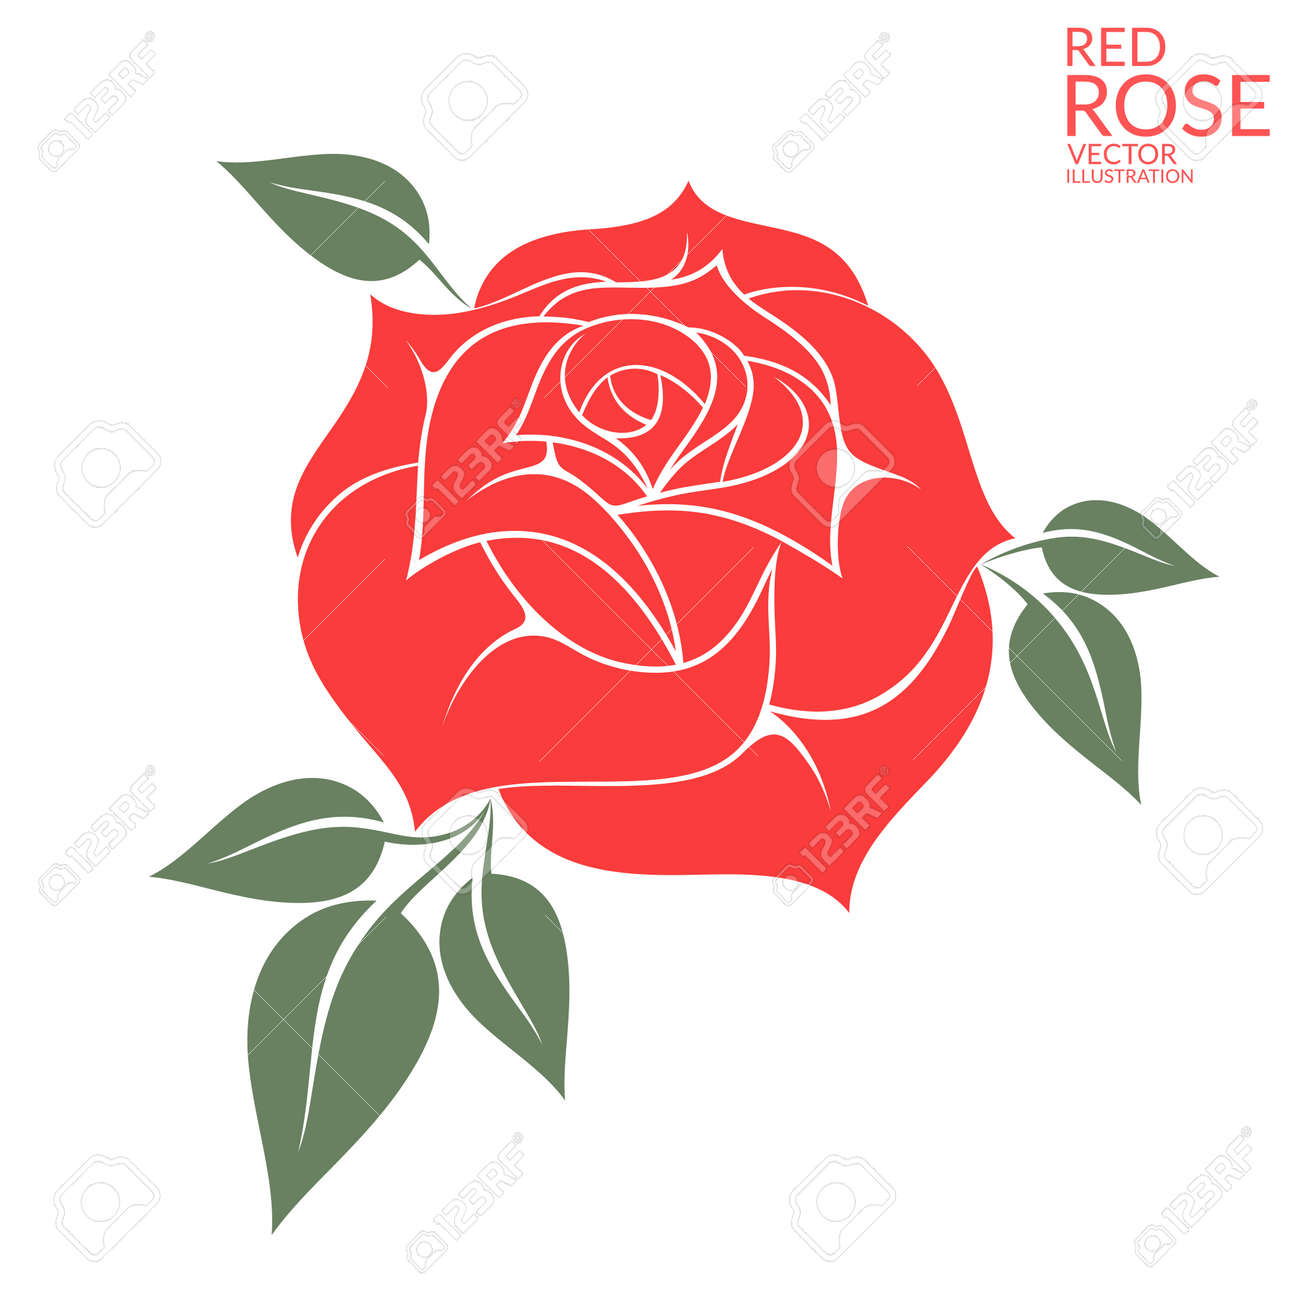 31 196 rose vector stock vector illustration and royalty free rose rh 123rf com rose vector file rose vector file